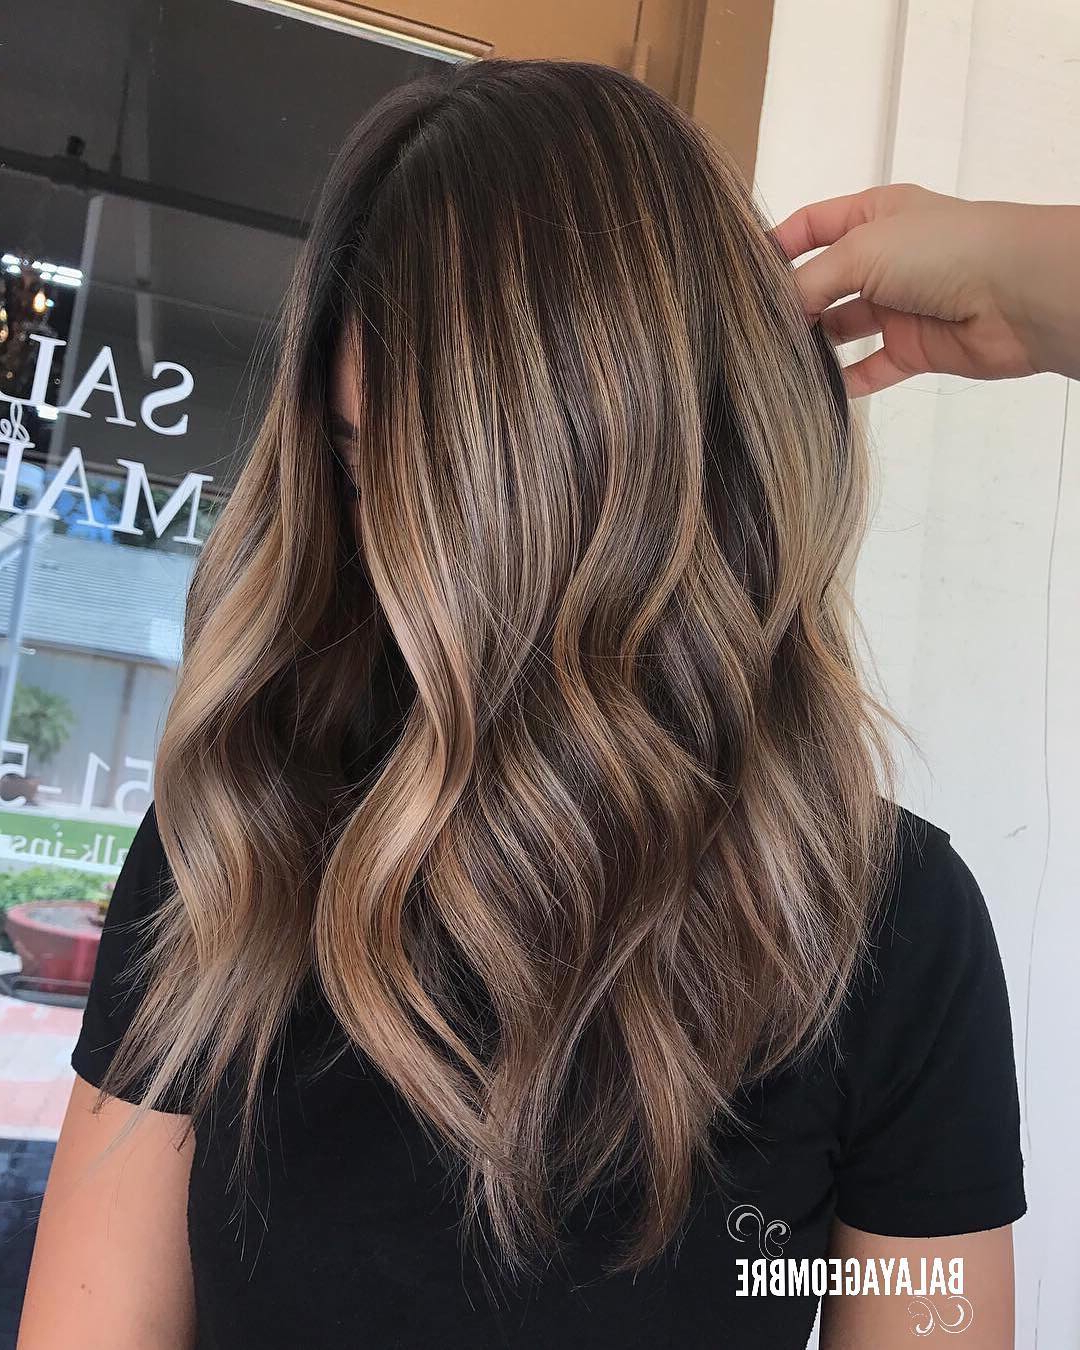 10 Best Medium Layered Hairstyles 2018 Brown & Ash Blonde Fashion Colors With Regard To Layered Haircuts For Thick Hair (View 1 of 20)